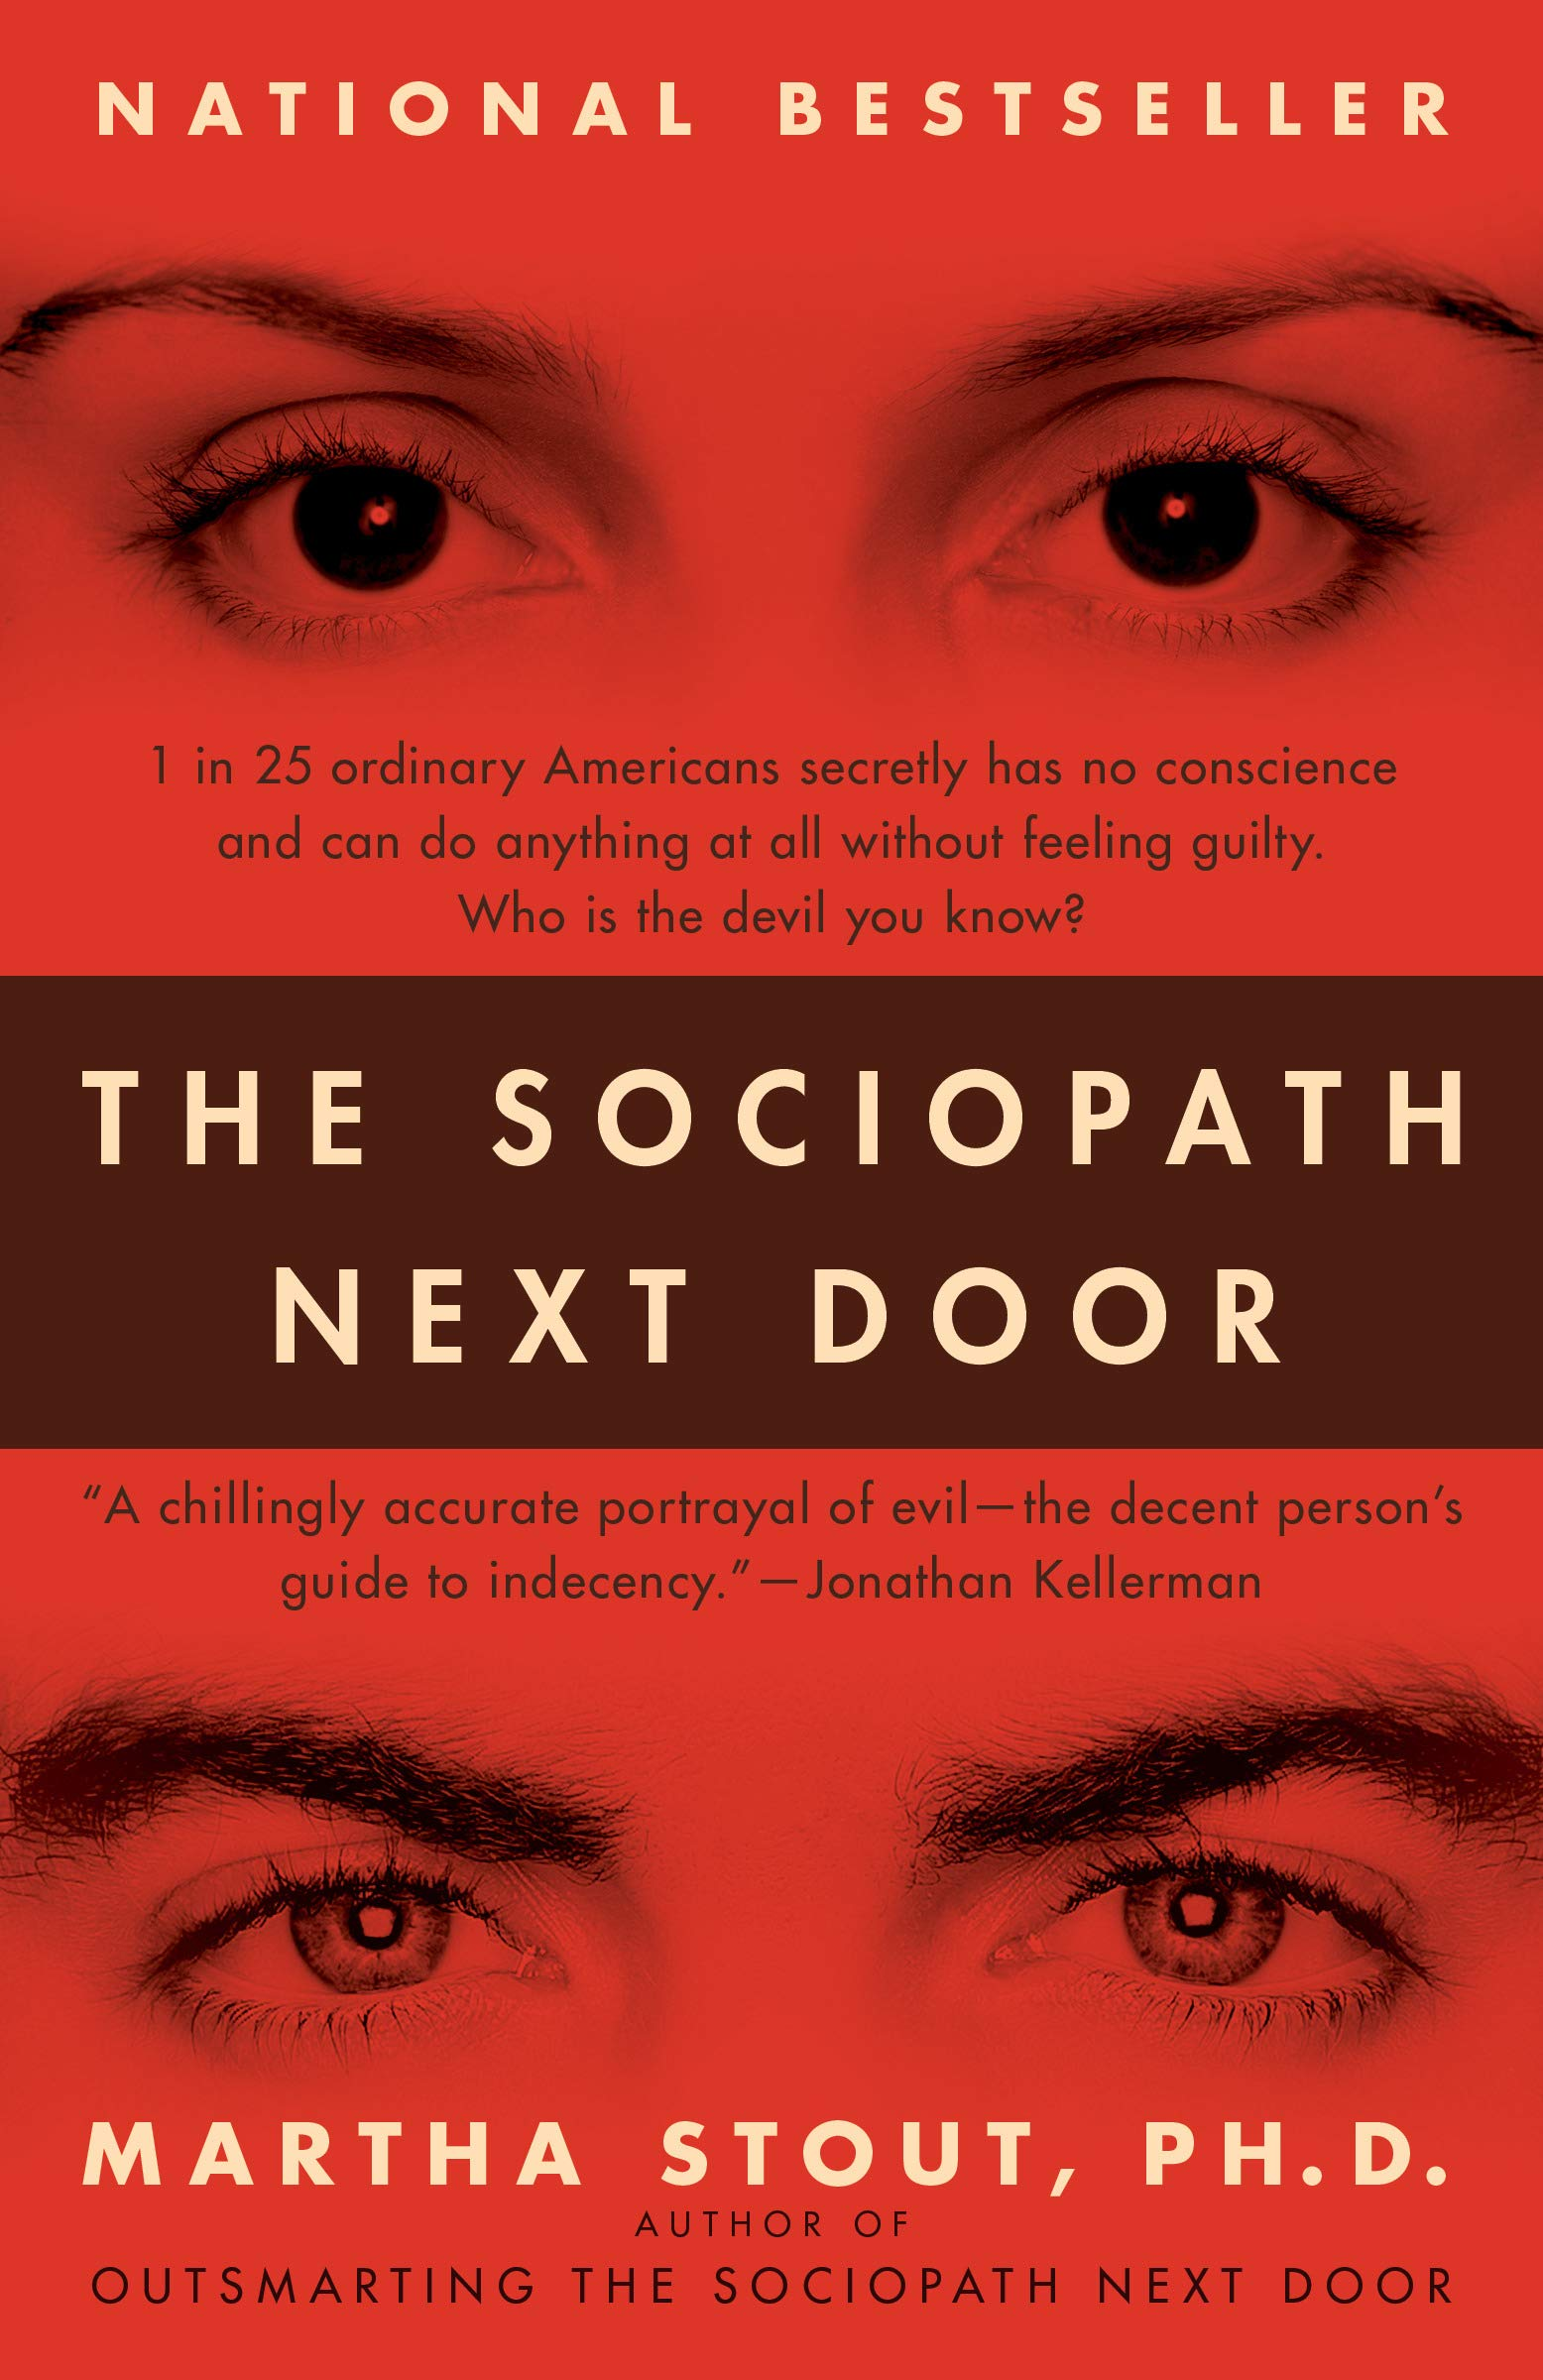 Confessions Of A Sociopath Pdf Free